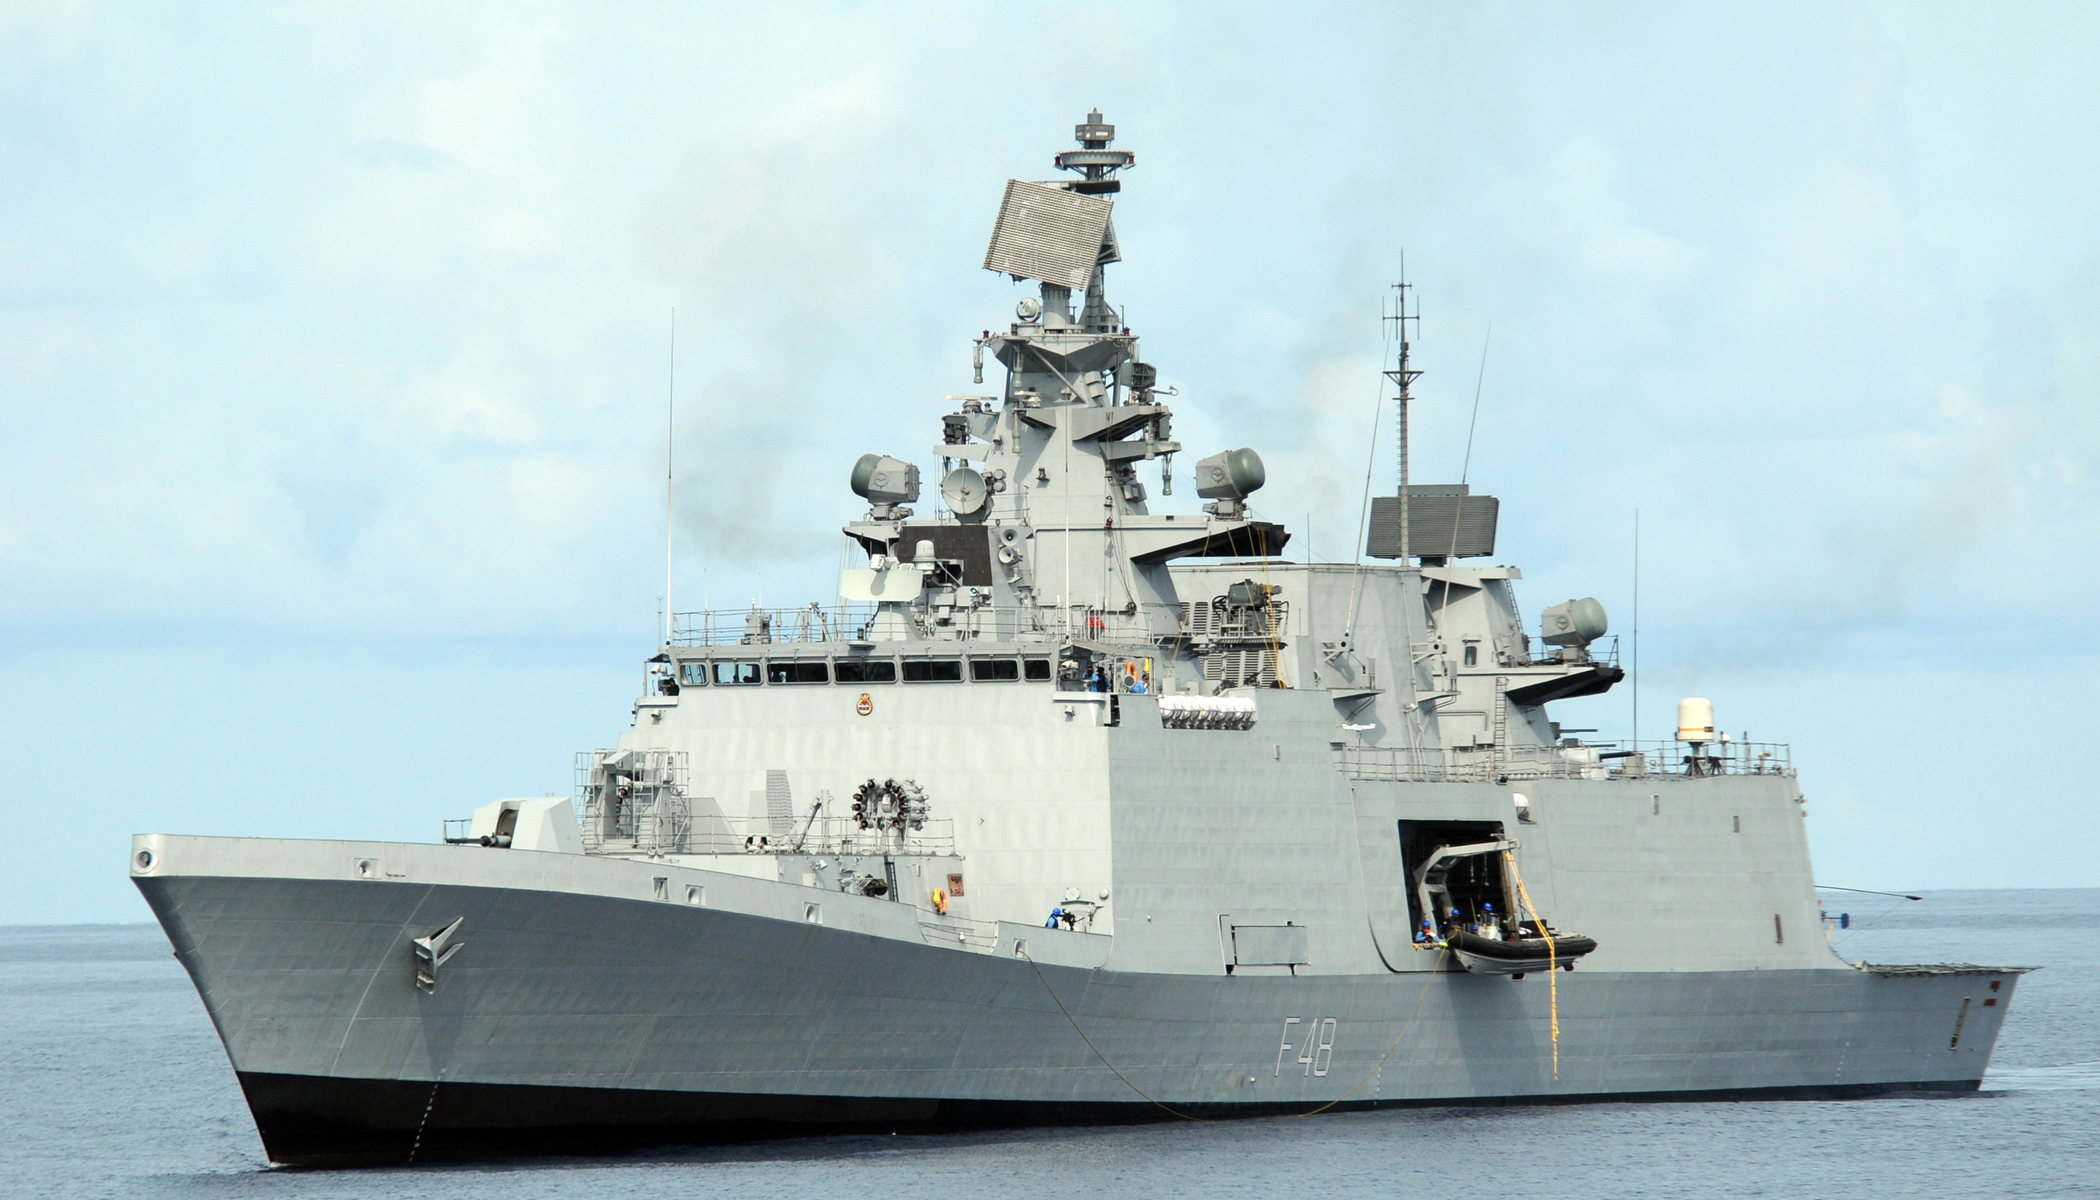 The INS Satpura, a Shivalik-class frigate, underway. The Shivalik-class vessels are the second-largest Indian-built surface combatants in service.